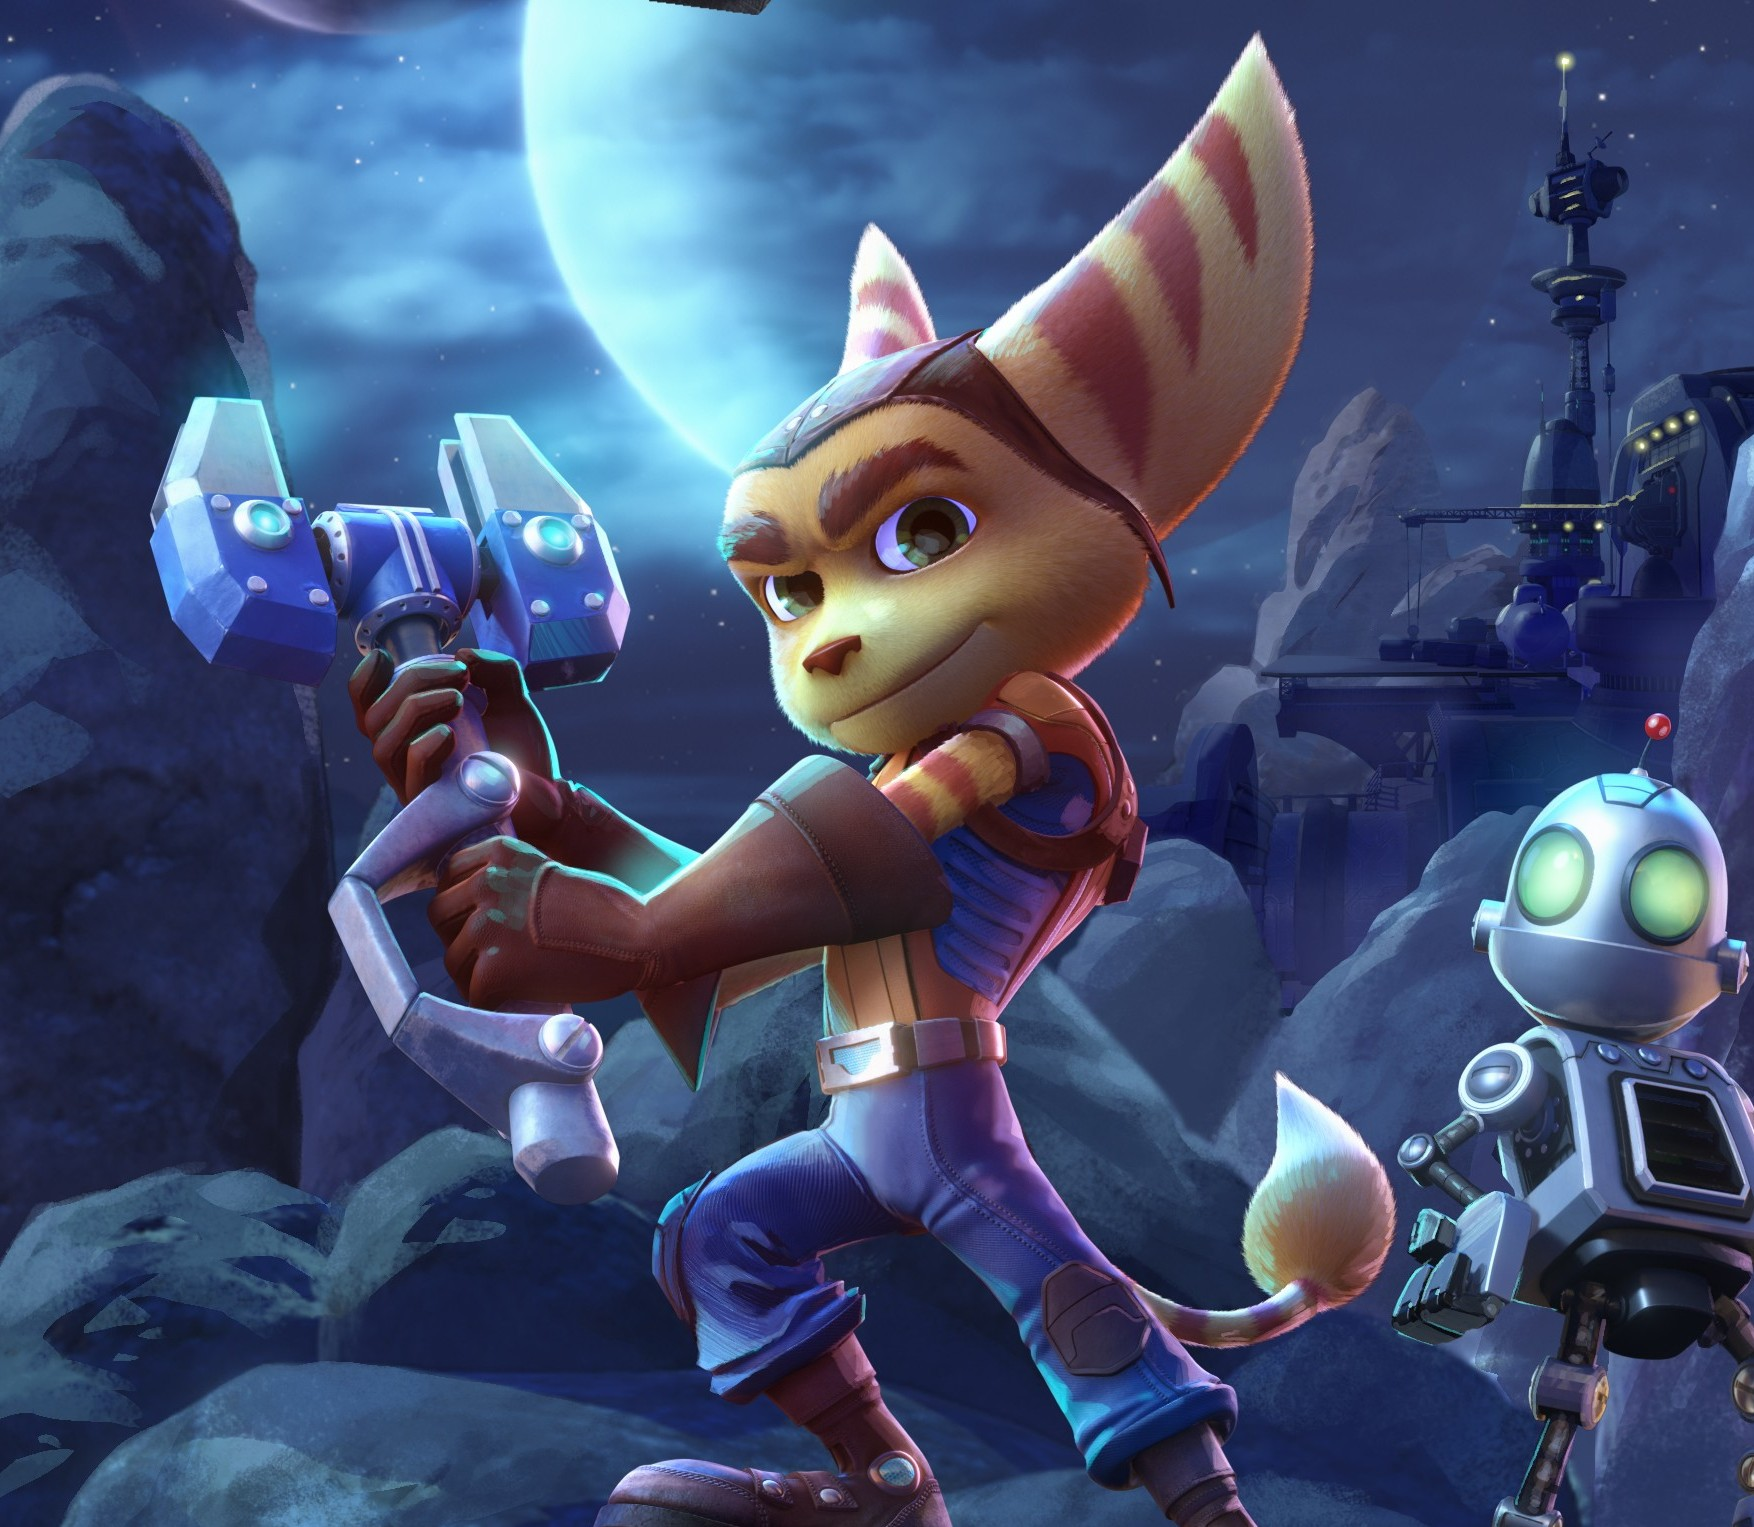 Ratchet_Clank_movie_poster_pose